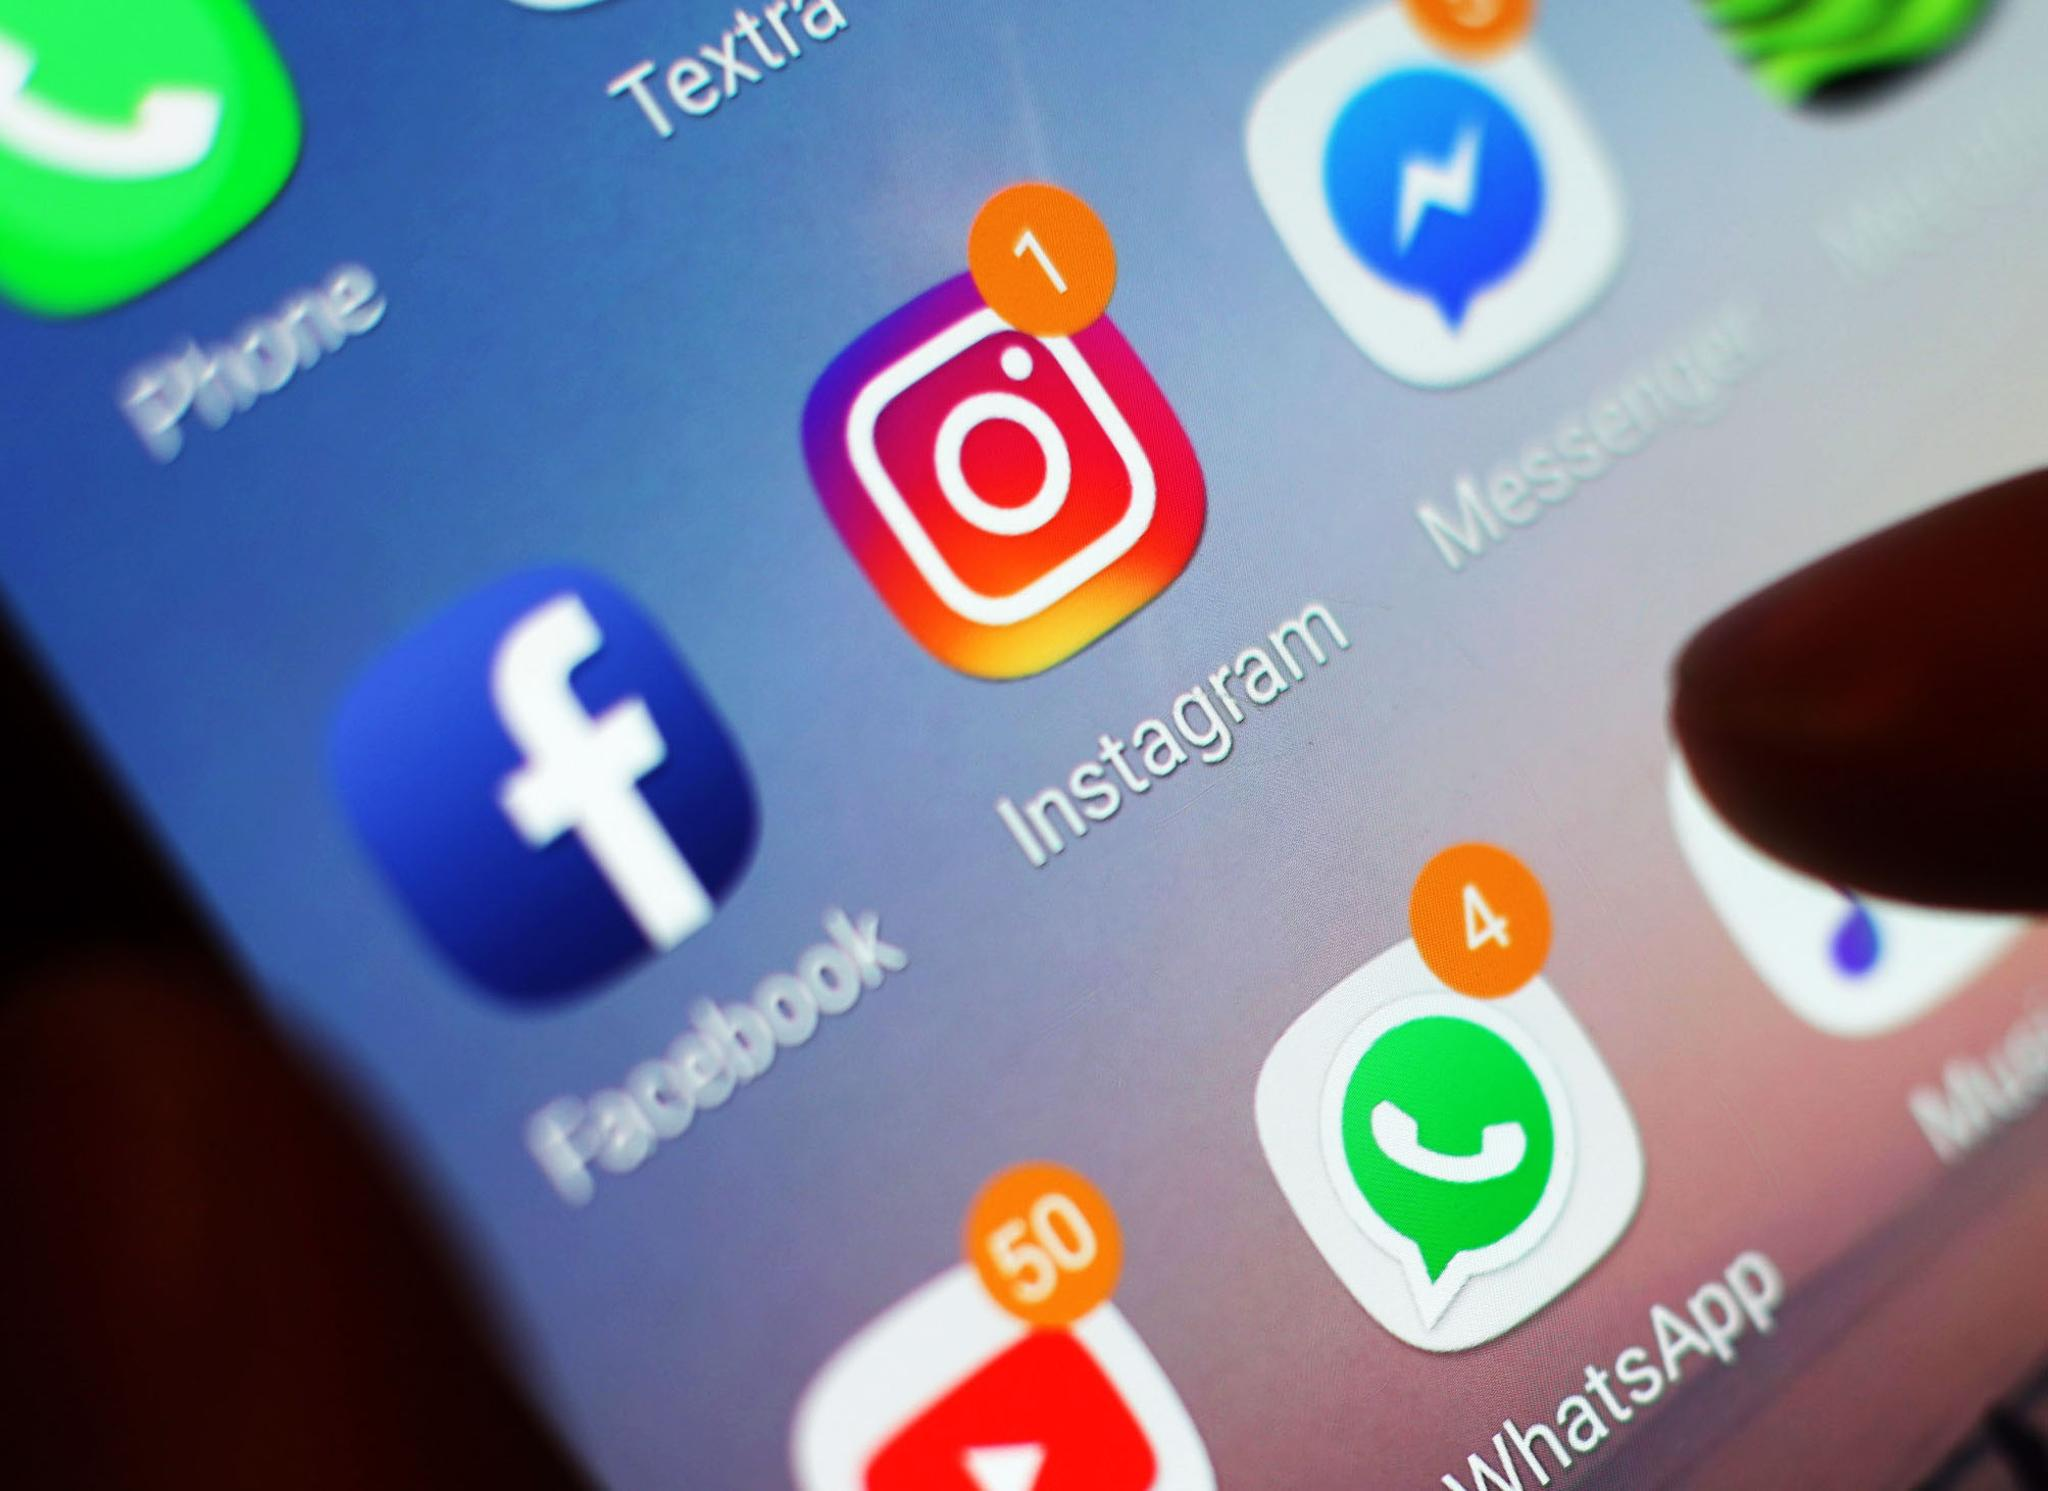 It'll take more to tackle young people's mental health issues than just banning images on Instagram